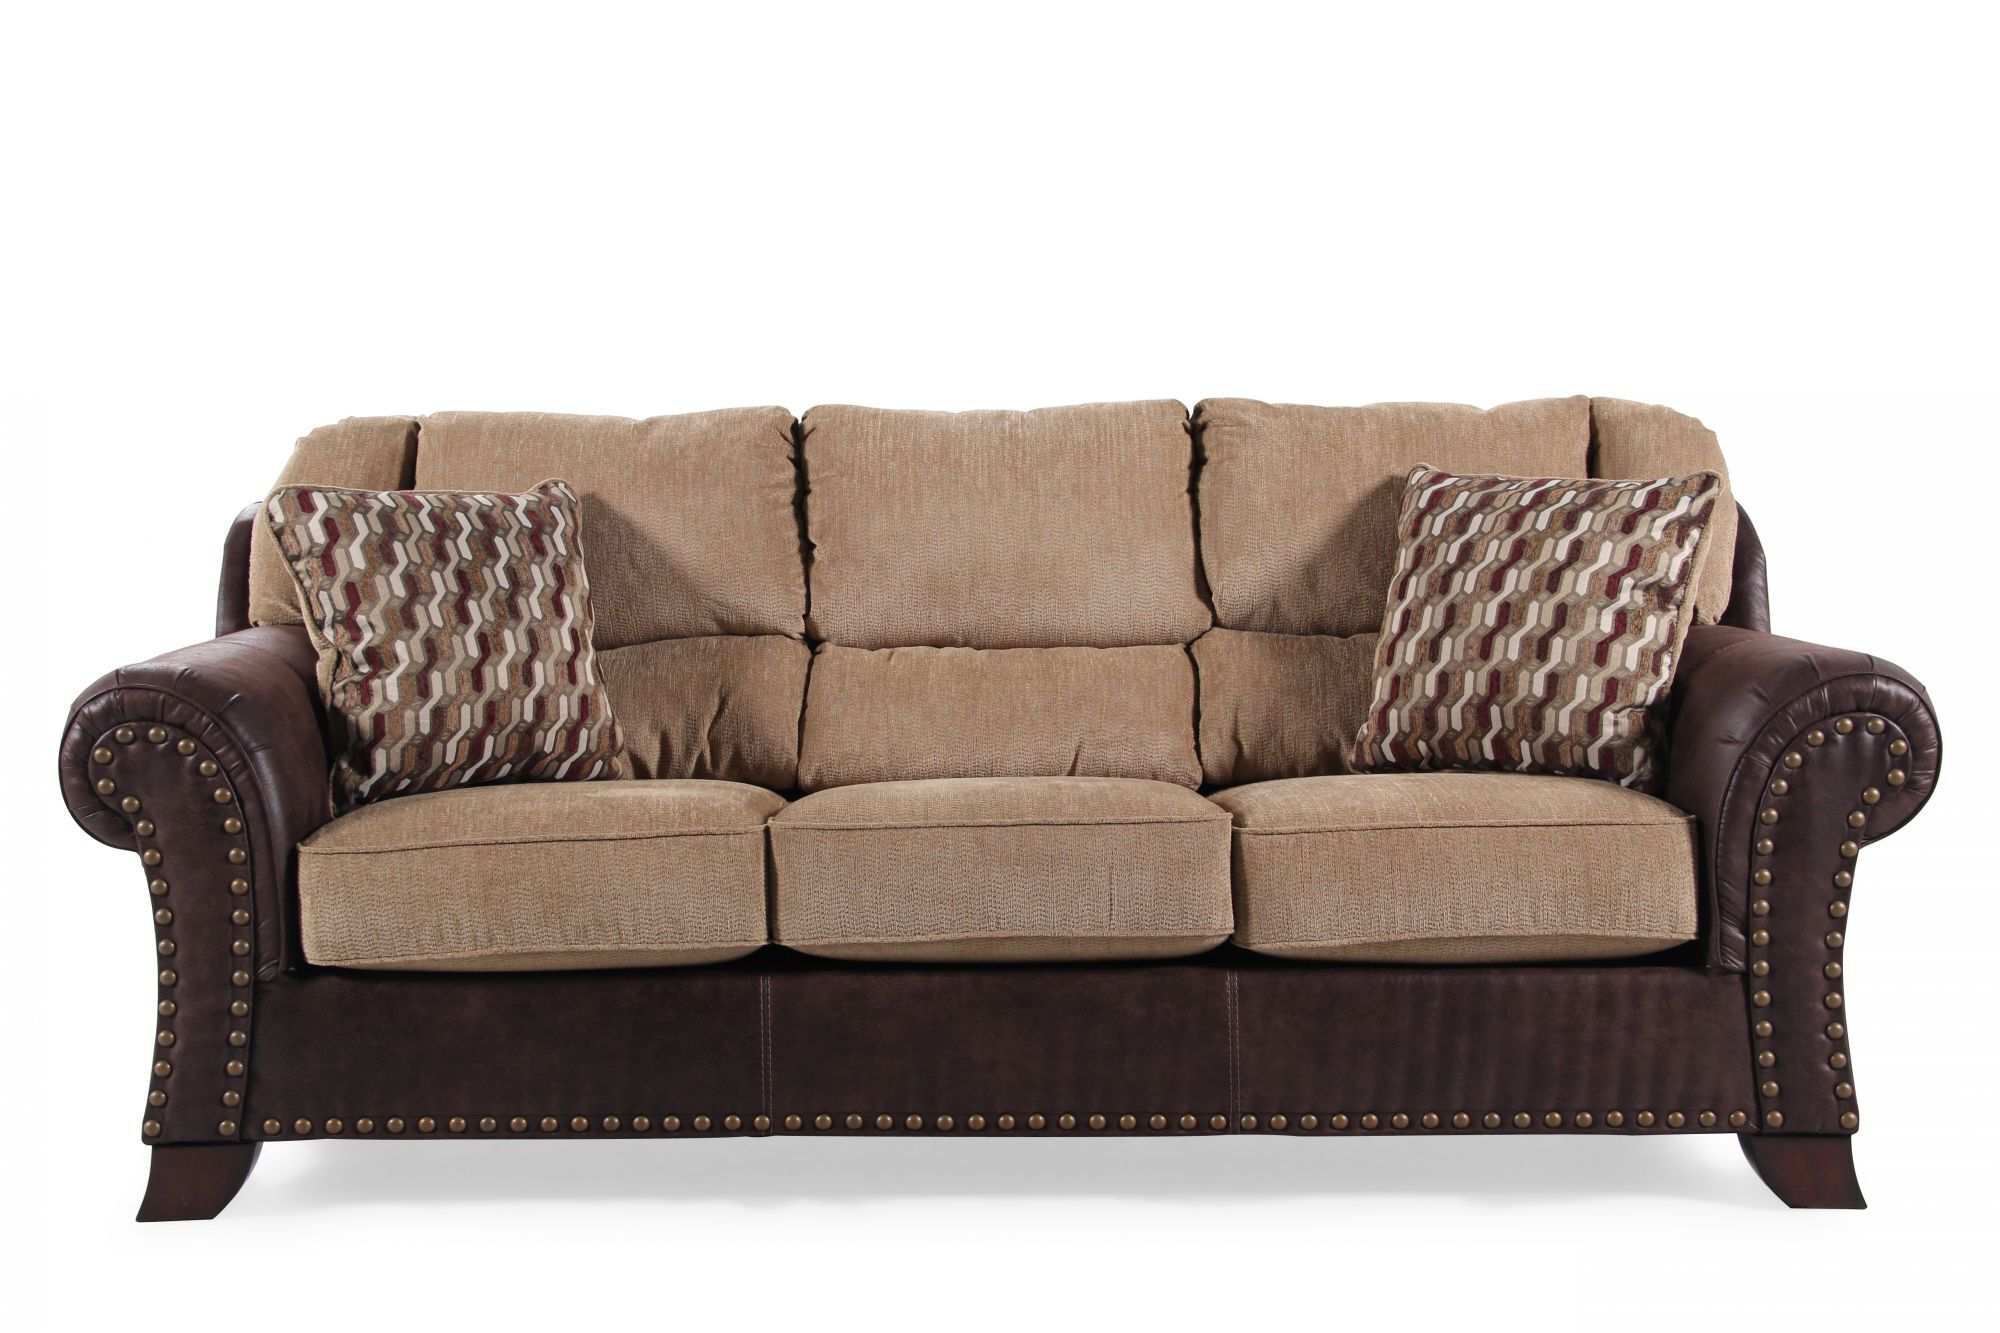 ashley furniture montgomery sofa small office sofas uk mocha casual traditional brown